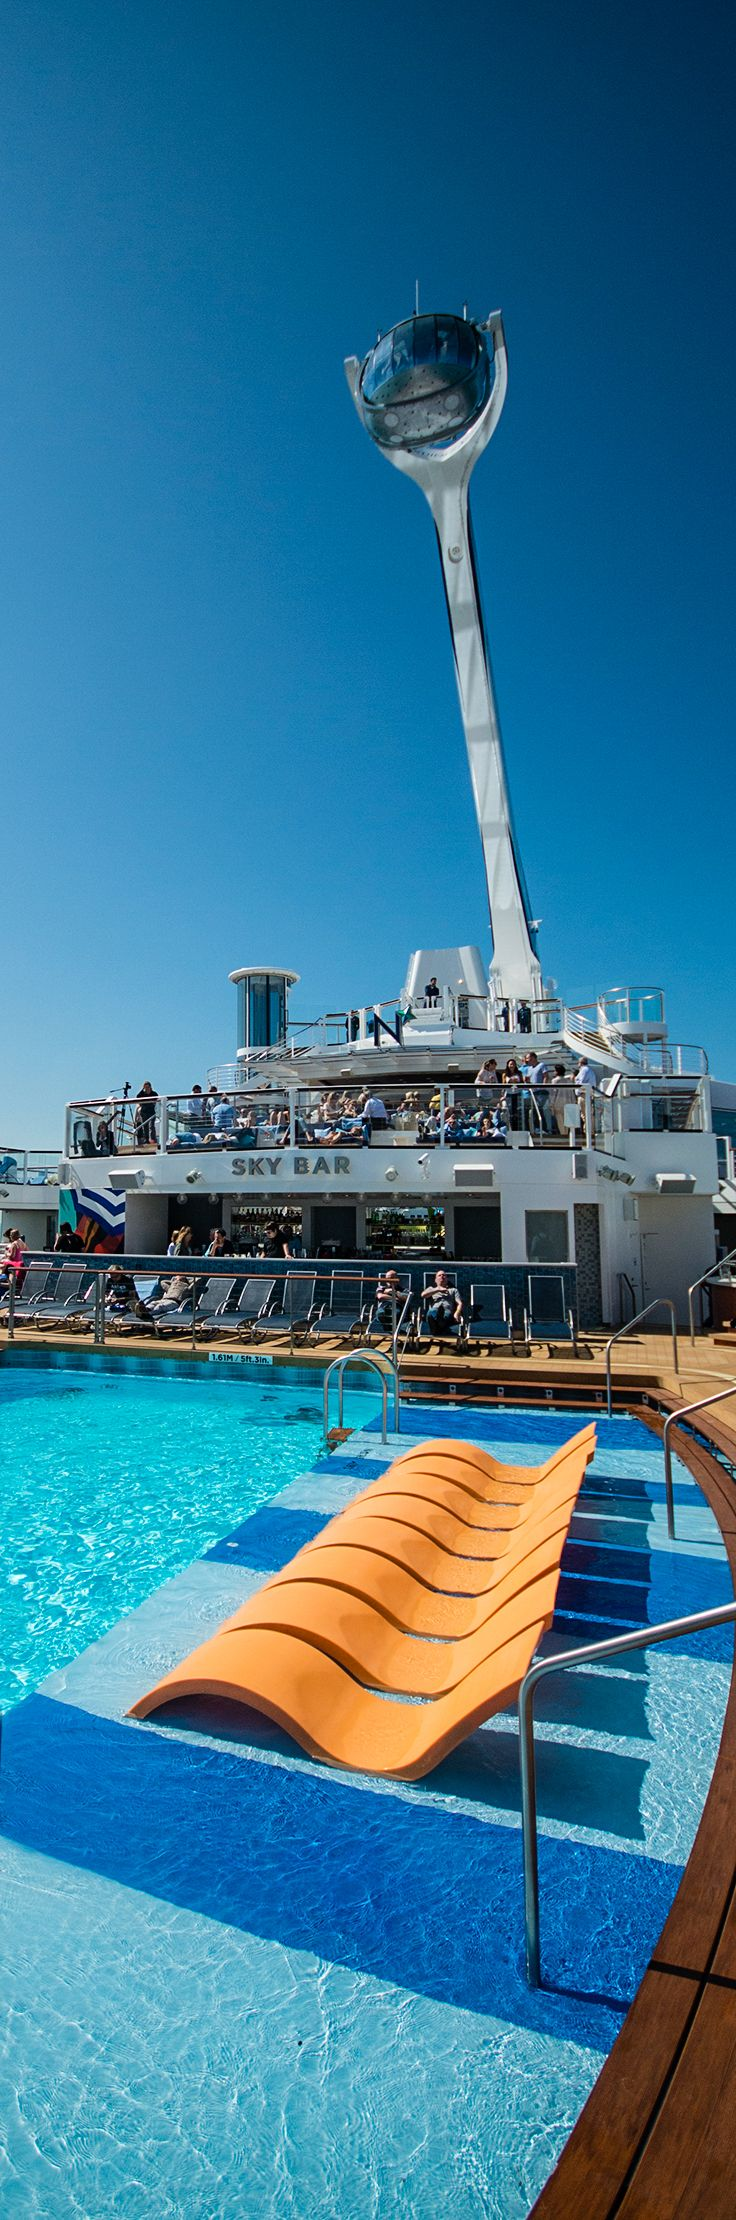 Planning Your Cruise Vacations to Avoid Frustrations